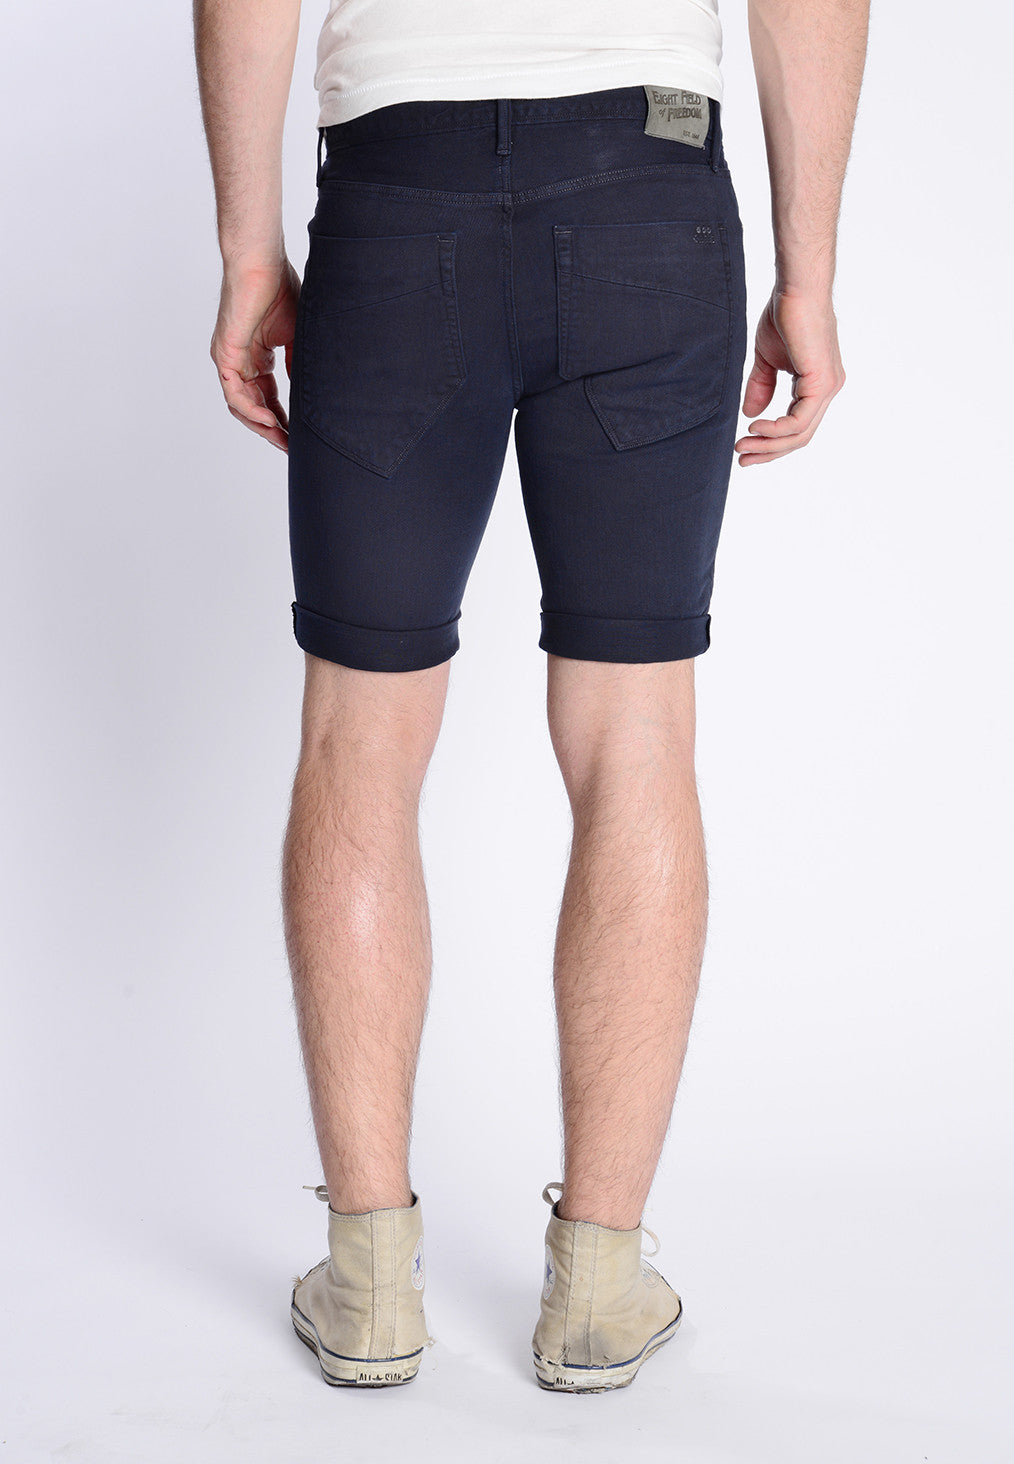 James Roll-Up Shorts - Navy